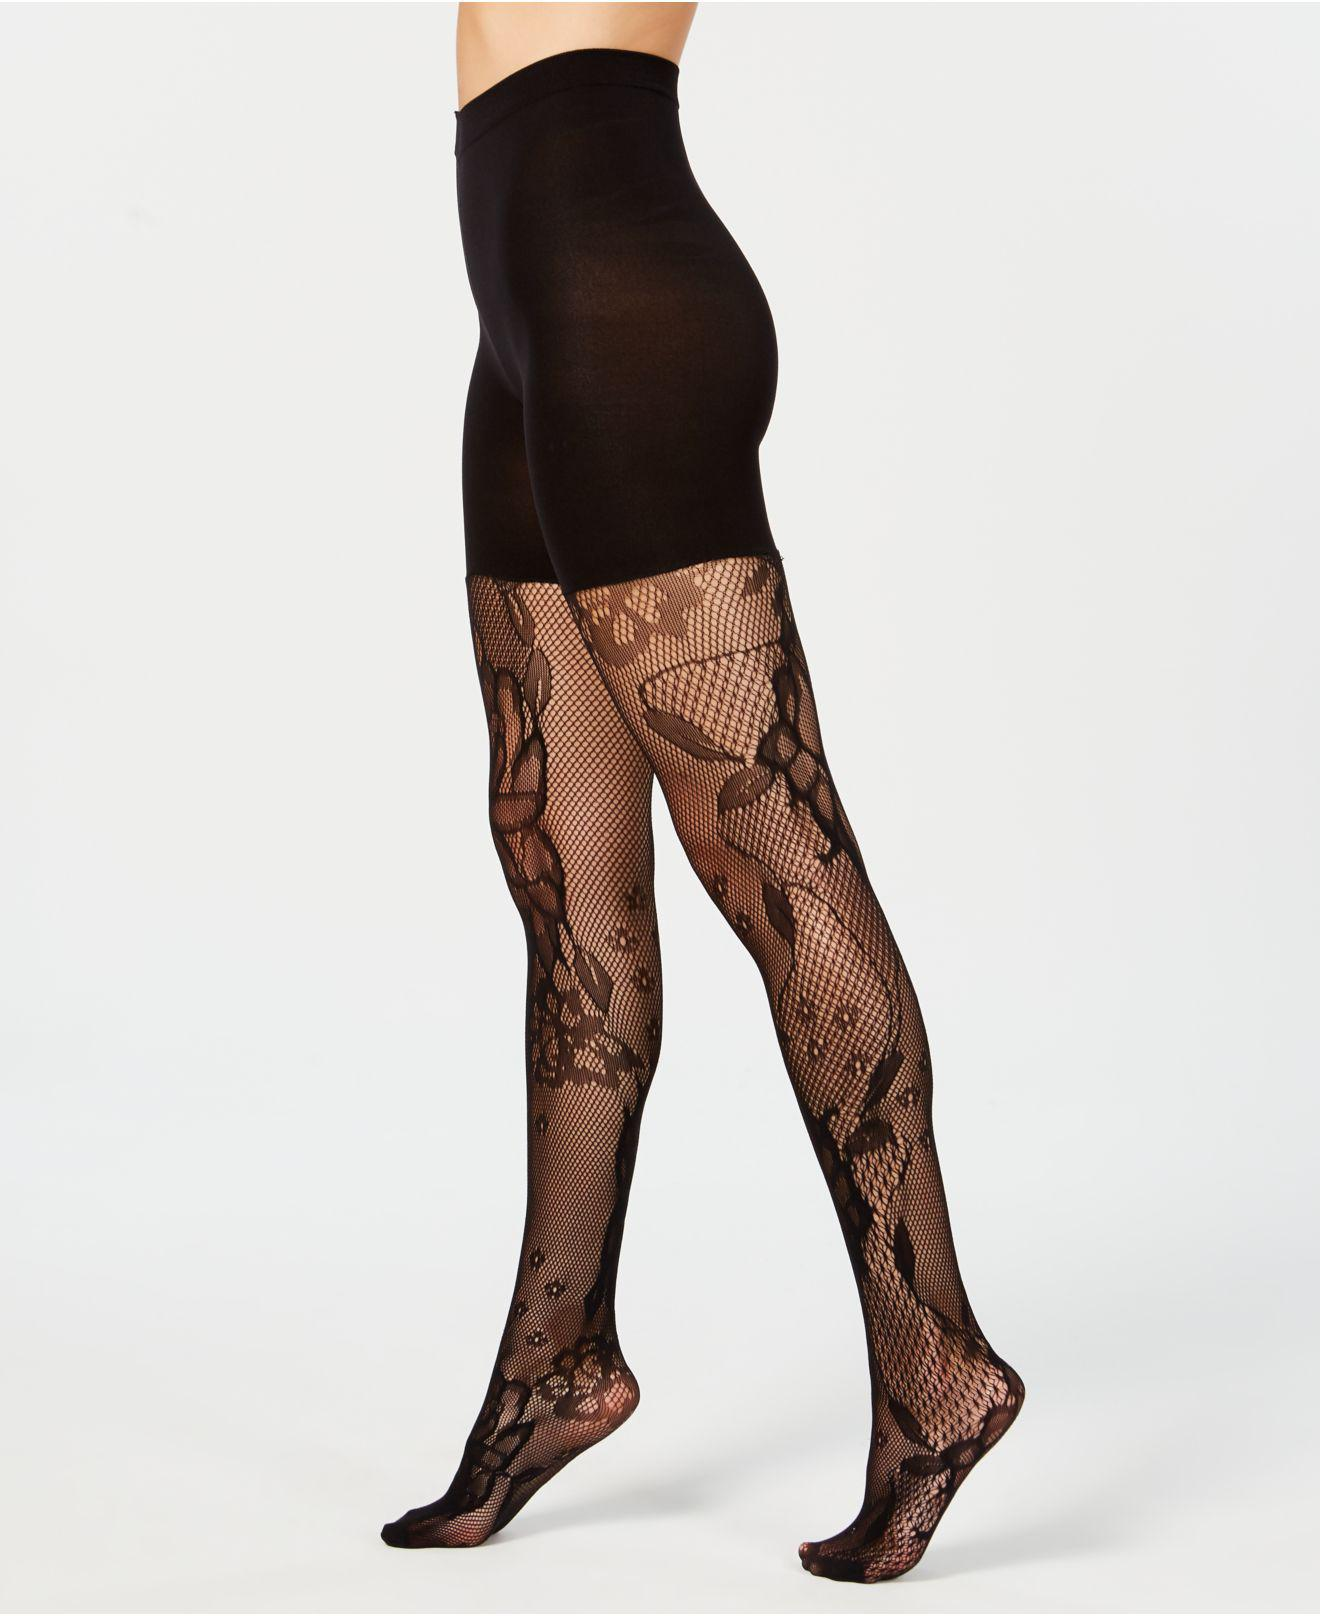 c420fbfb97b17 Spanx ® Fishnet Floral Mid-thigh Shaping Tights in Black - Lyst